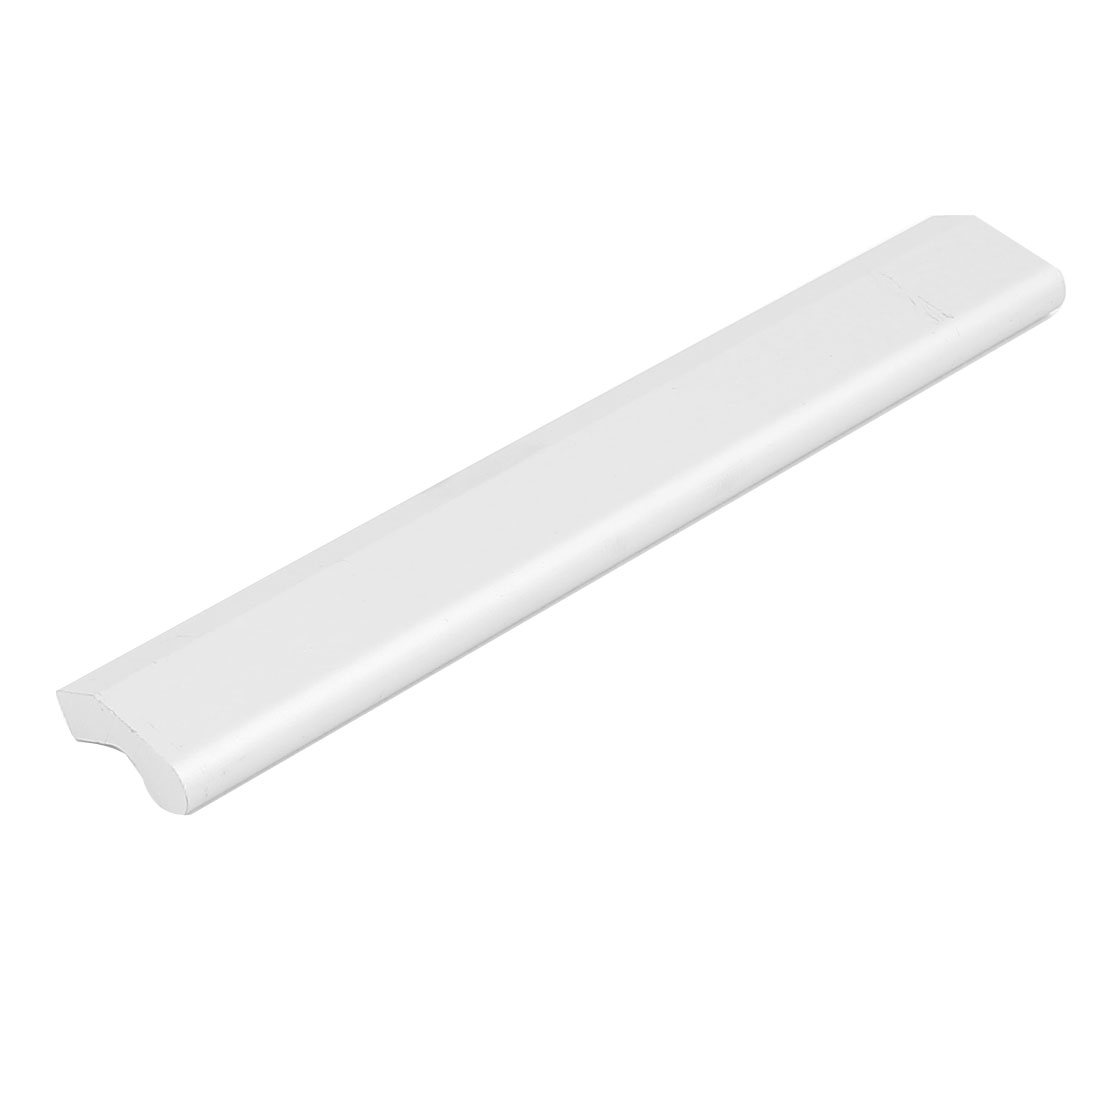 15cm Long Furniture Cabinet Drawer Aluminium Alloy Pull Handle